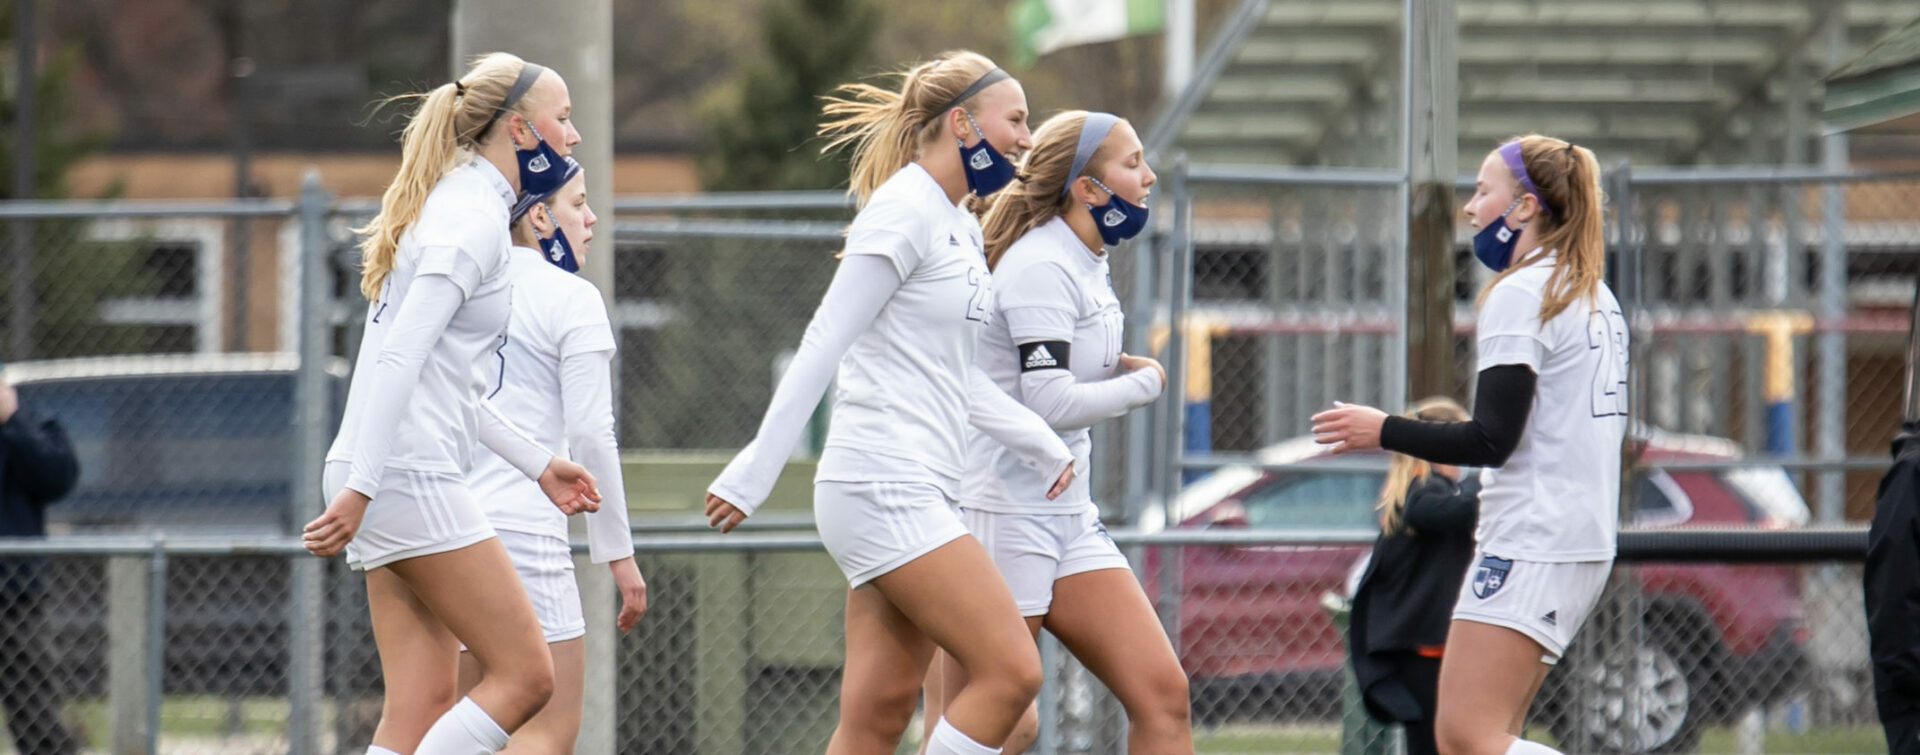 Mona Shores girls soccer team improves to 3-1 with an impressive 5-0 shutout victory over Reeths-Puffer